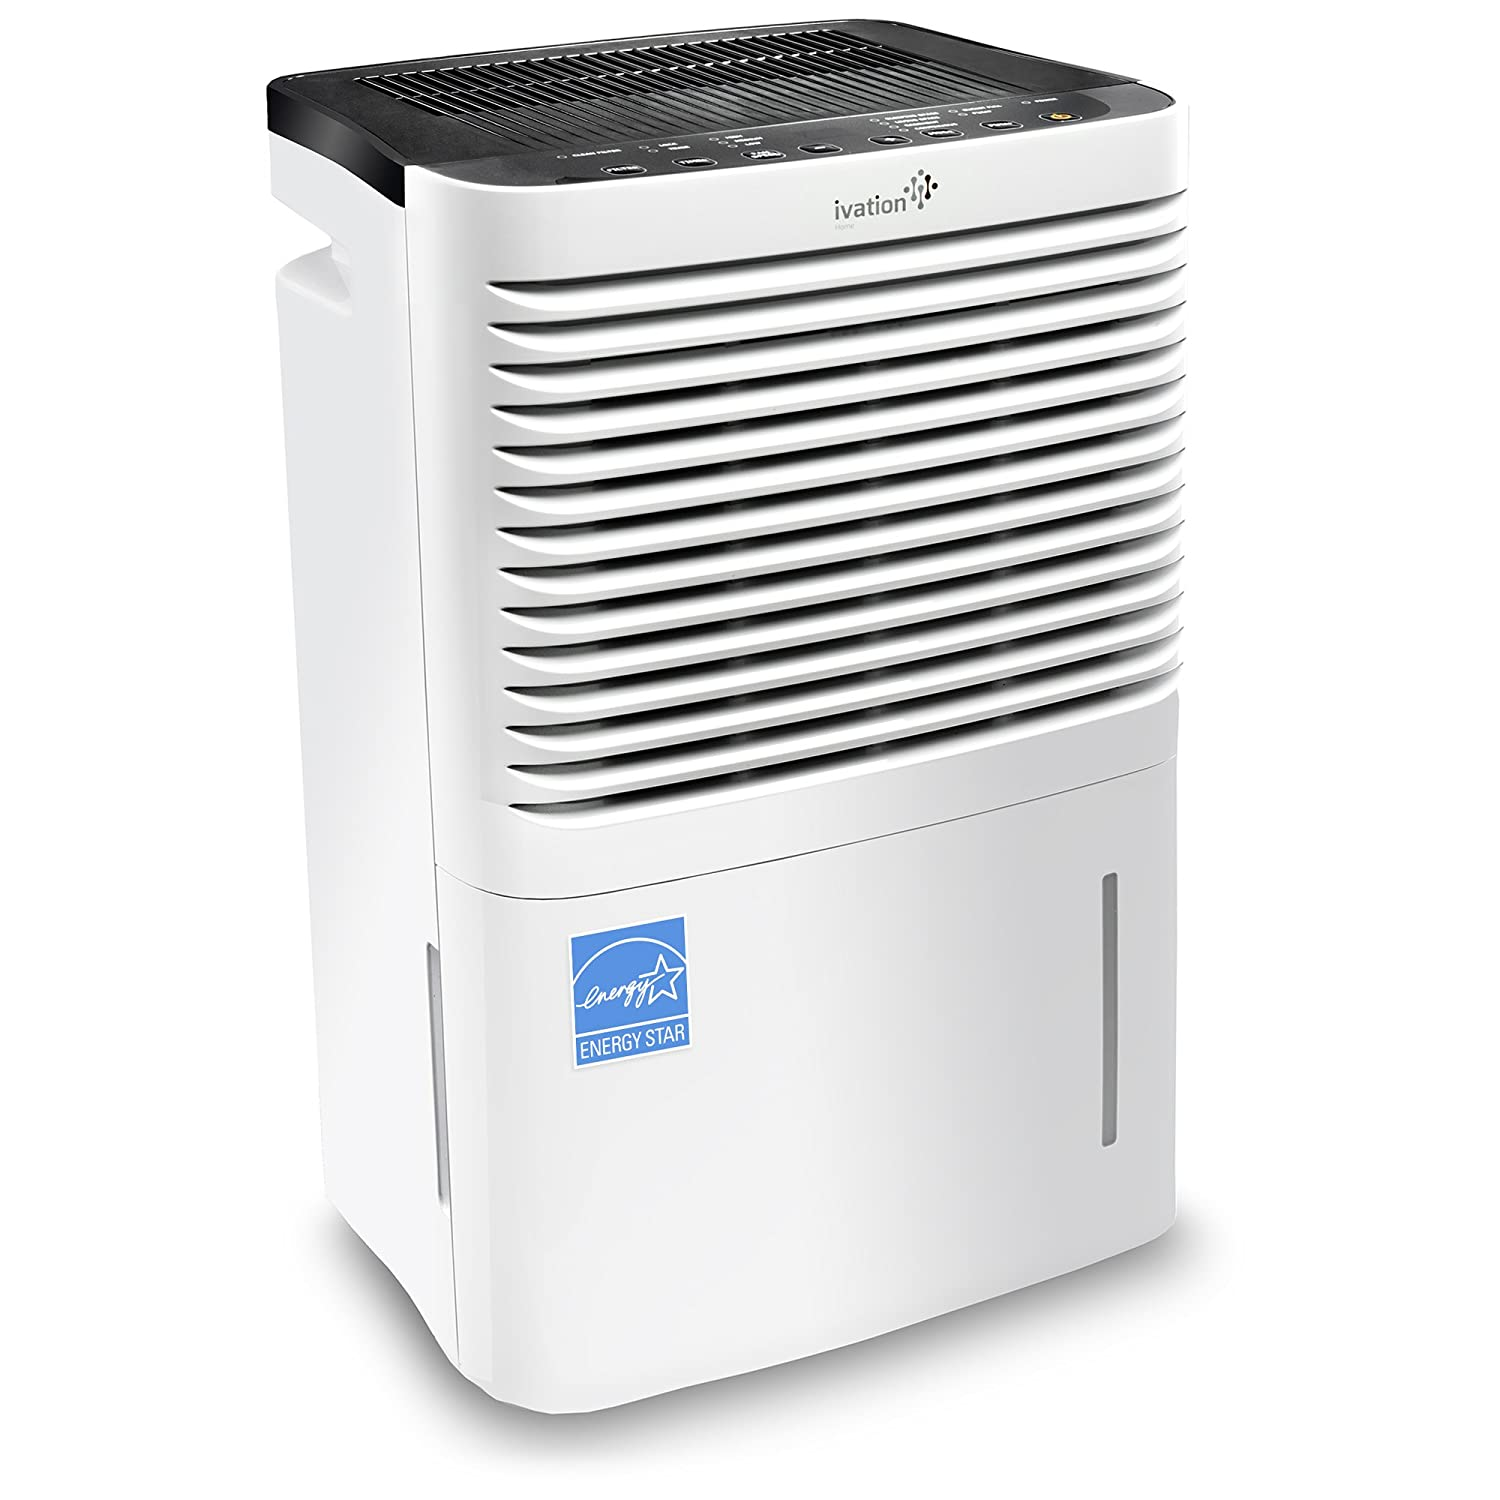 Amazon.com - Ivation 70 Pint Energy Star Compressor Dehumidifier -  Large-Capacity for Spaces Up to 4, 500 Sq Ft - Includes Programmable  Humidistat, ...